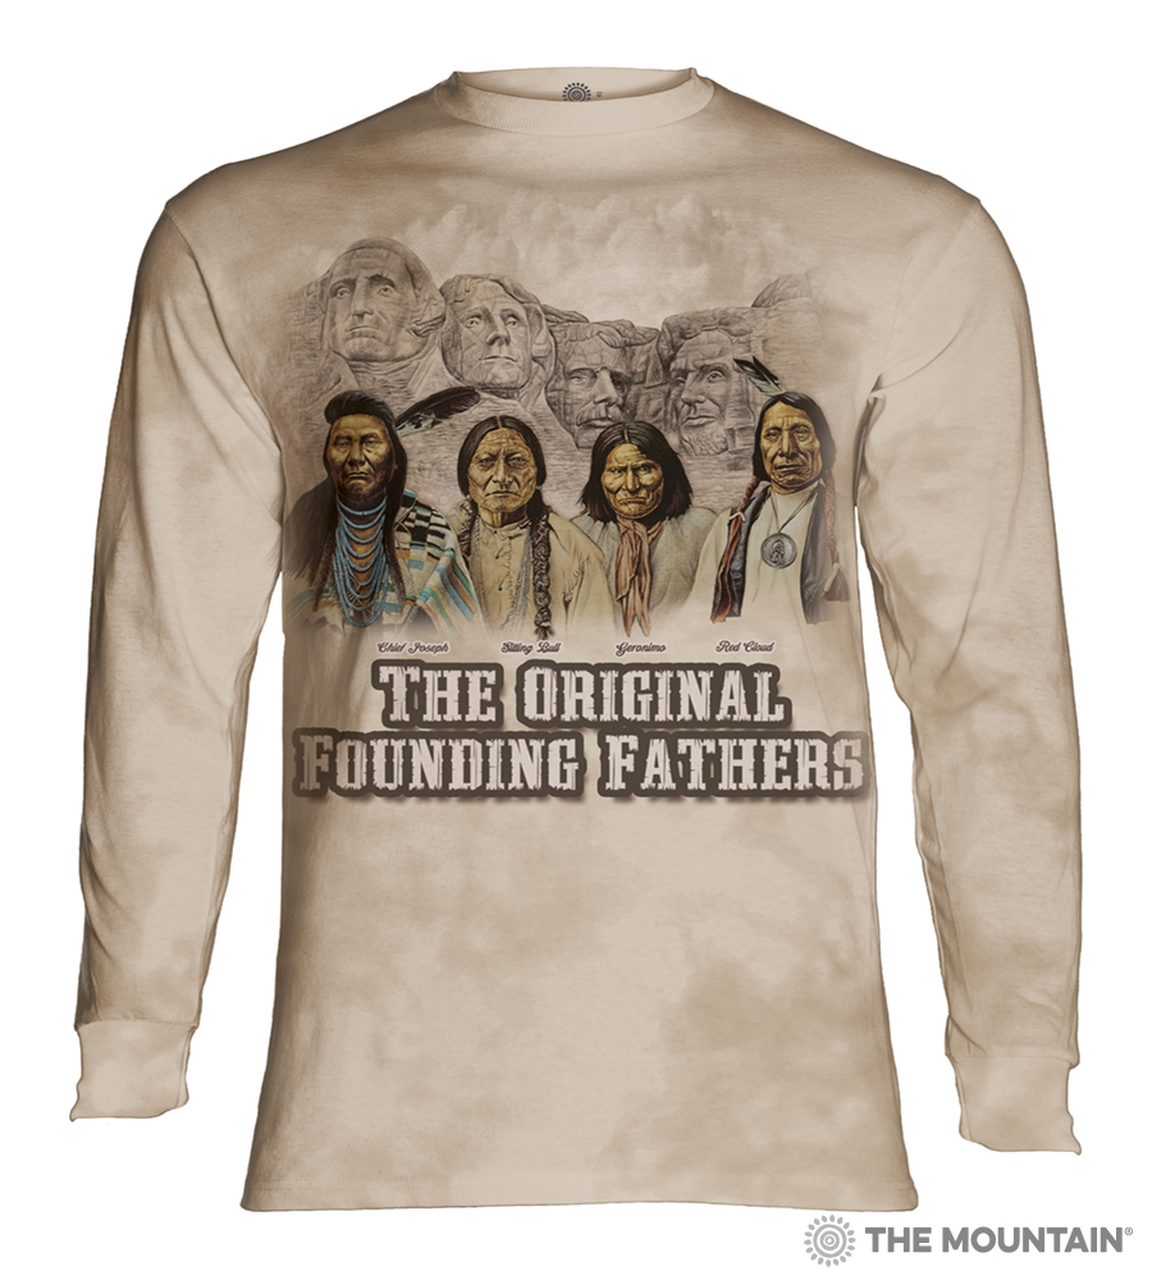 The Original Founding Fathers - 45-3615 - Adult Long Sleeve T-shirt